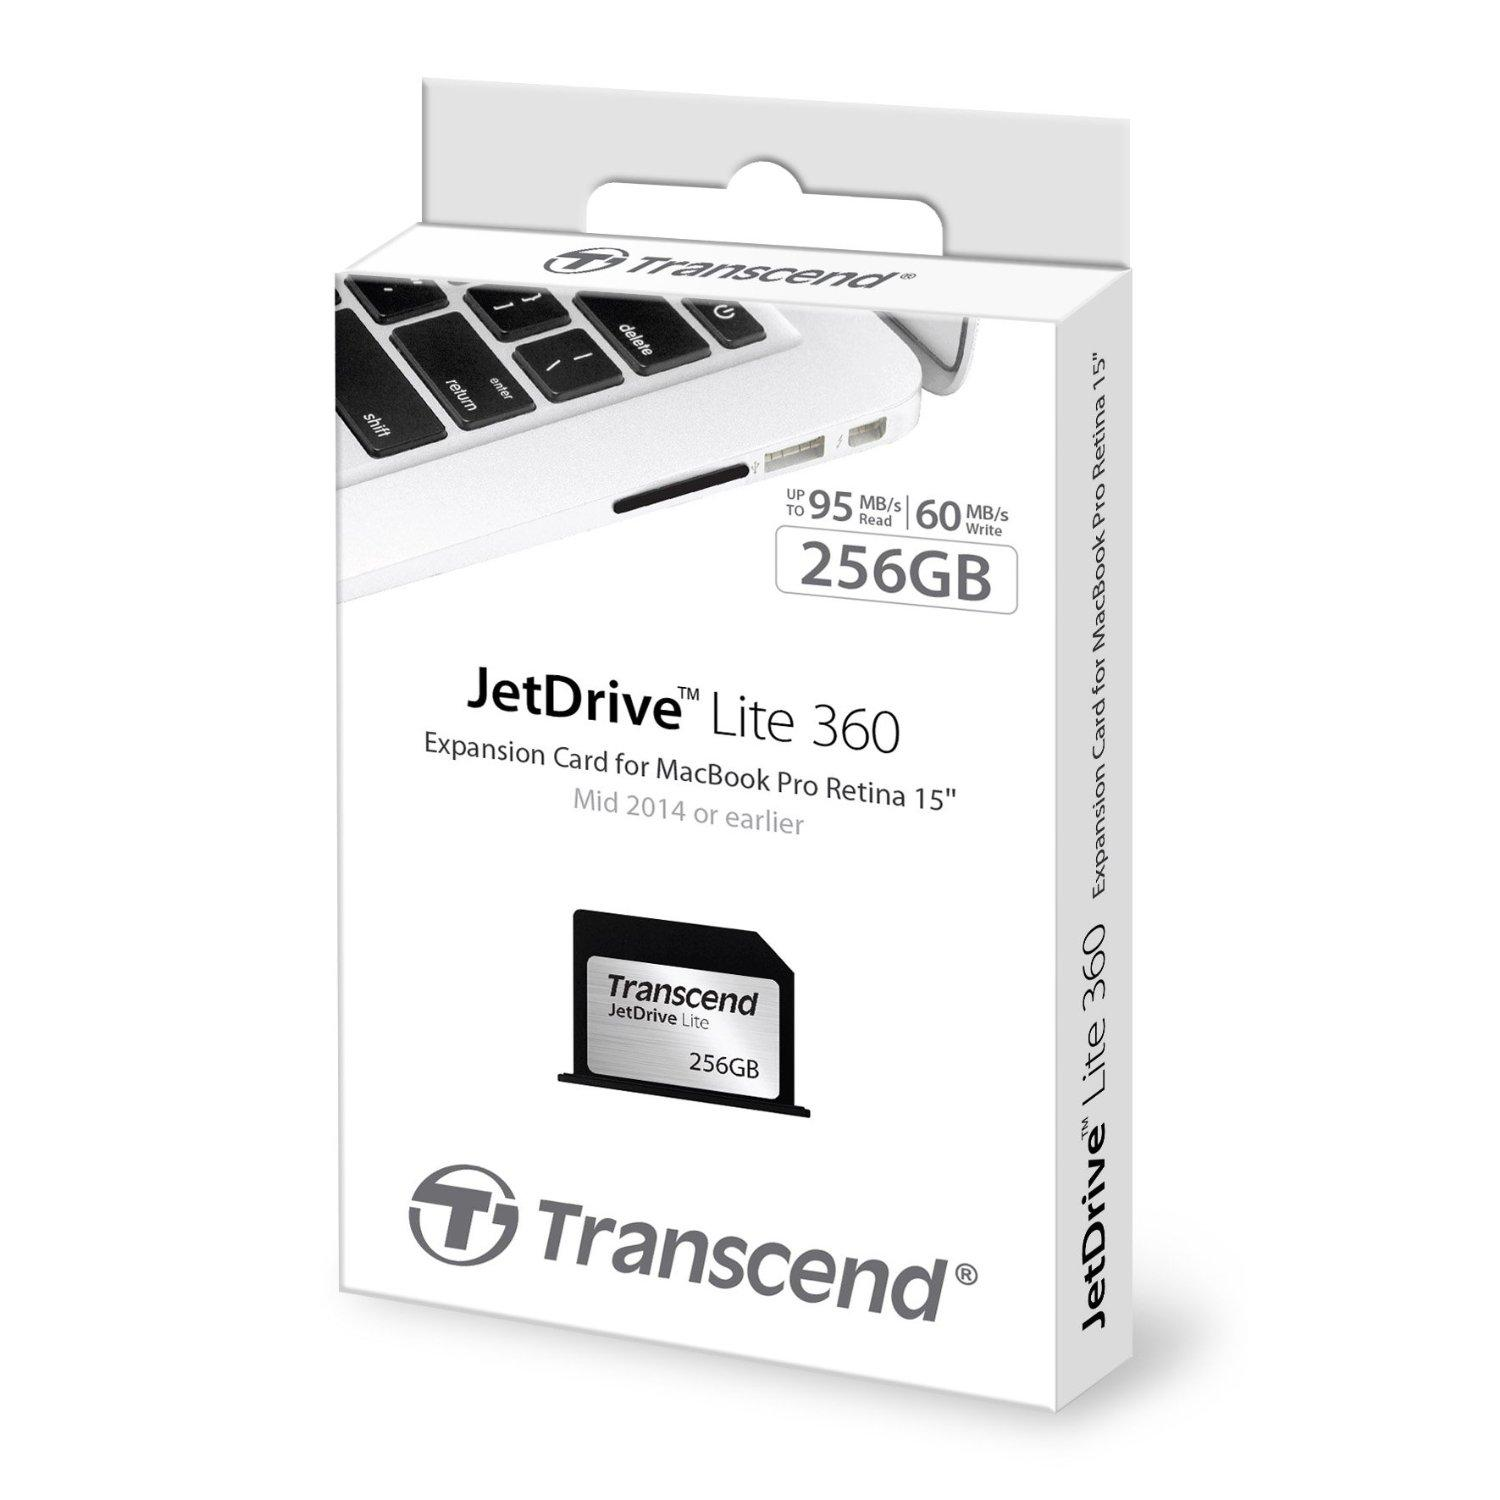 $138.99 Transcend 256GB JetDrive Lite 360 Storage Expansion Card for 15-Inch MacBook Pro with Retina Display